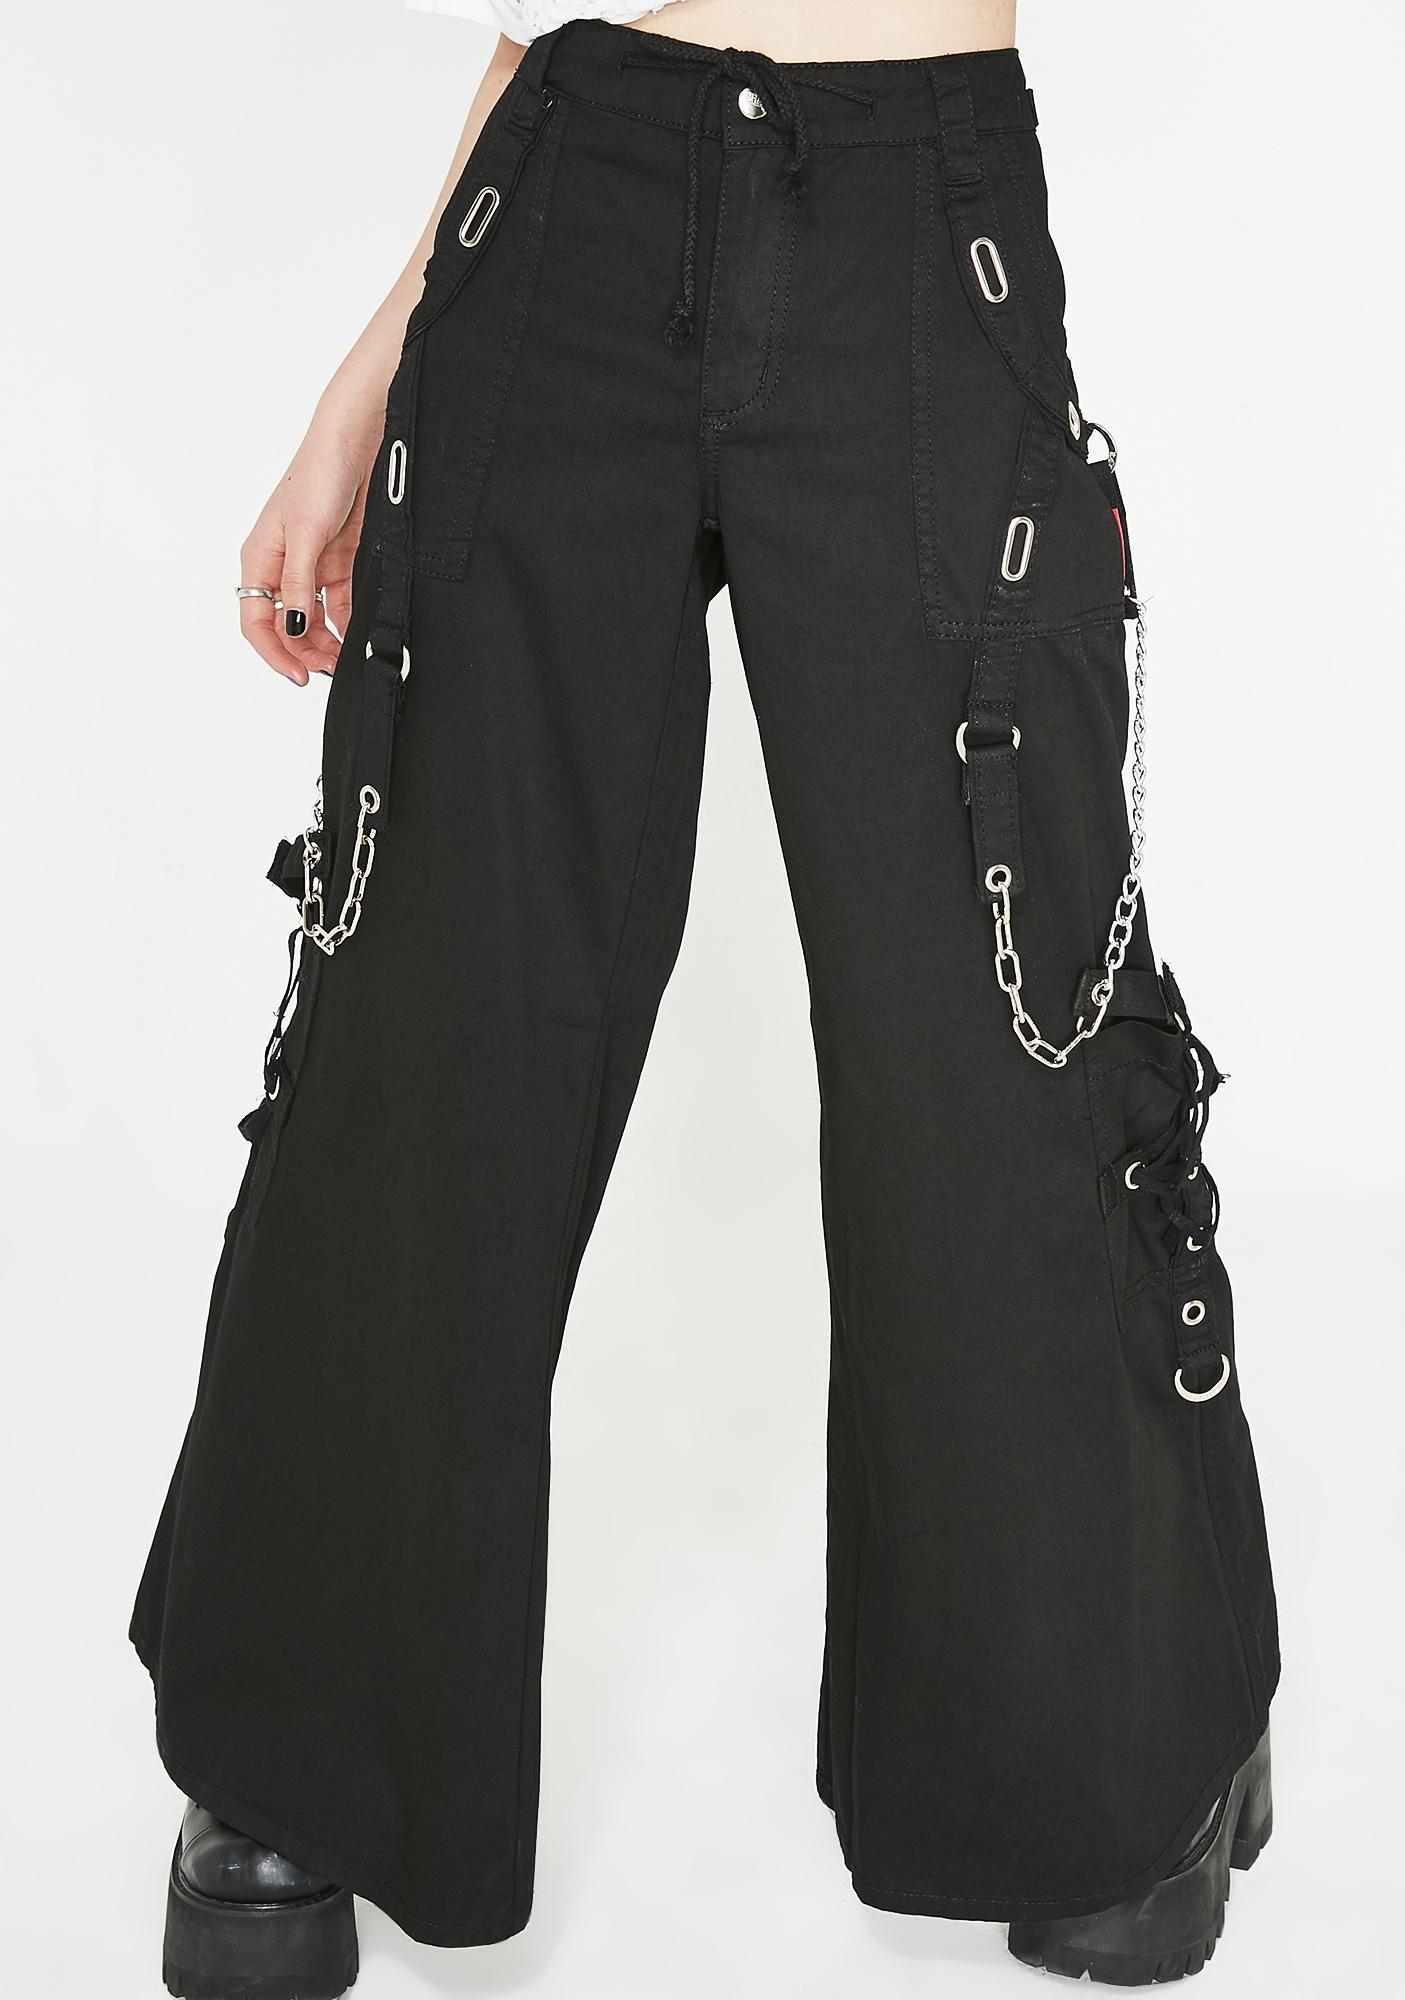 Tripp NYC Ring-O Pant